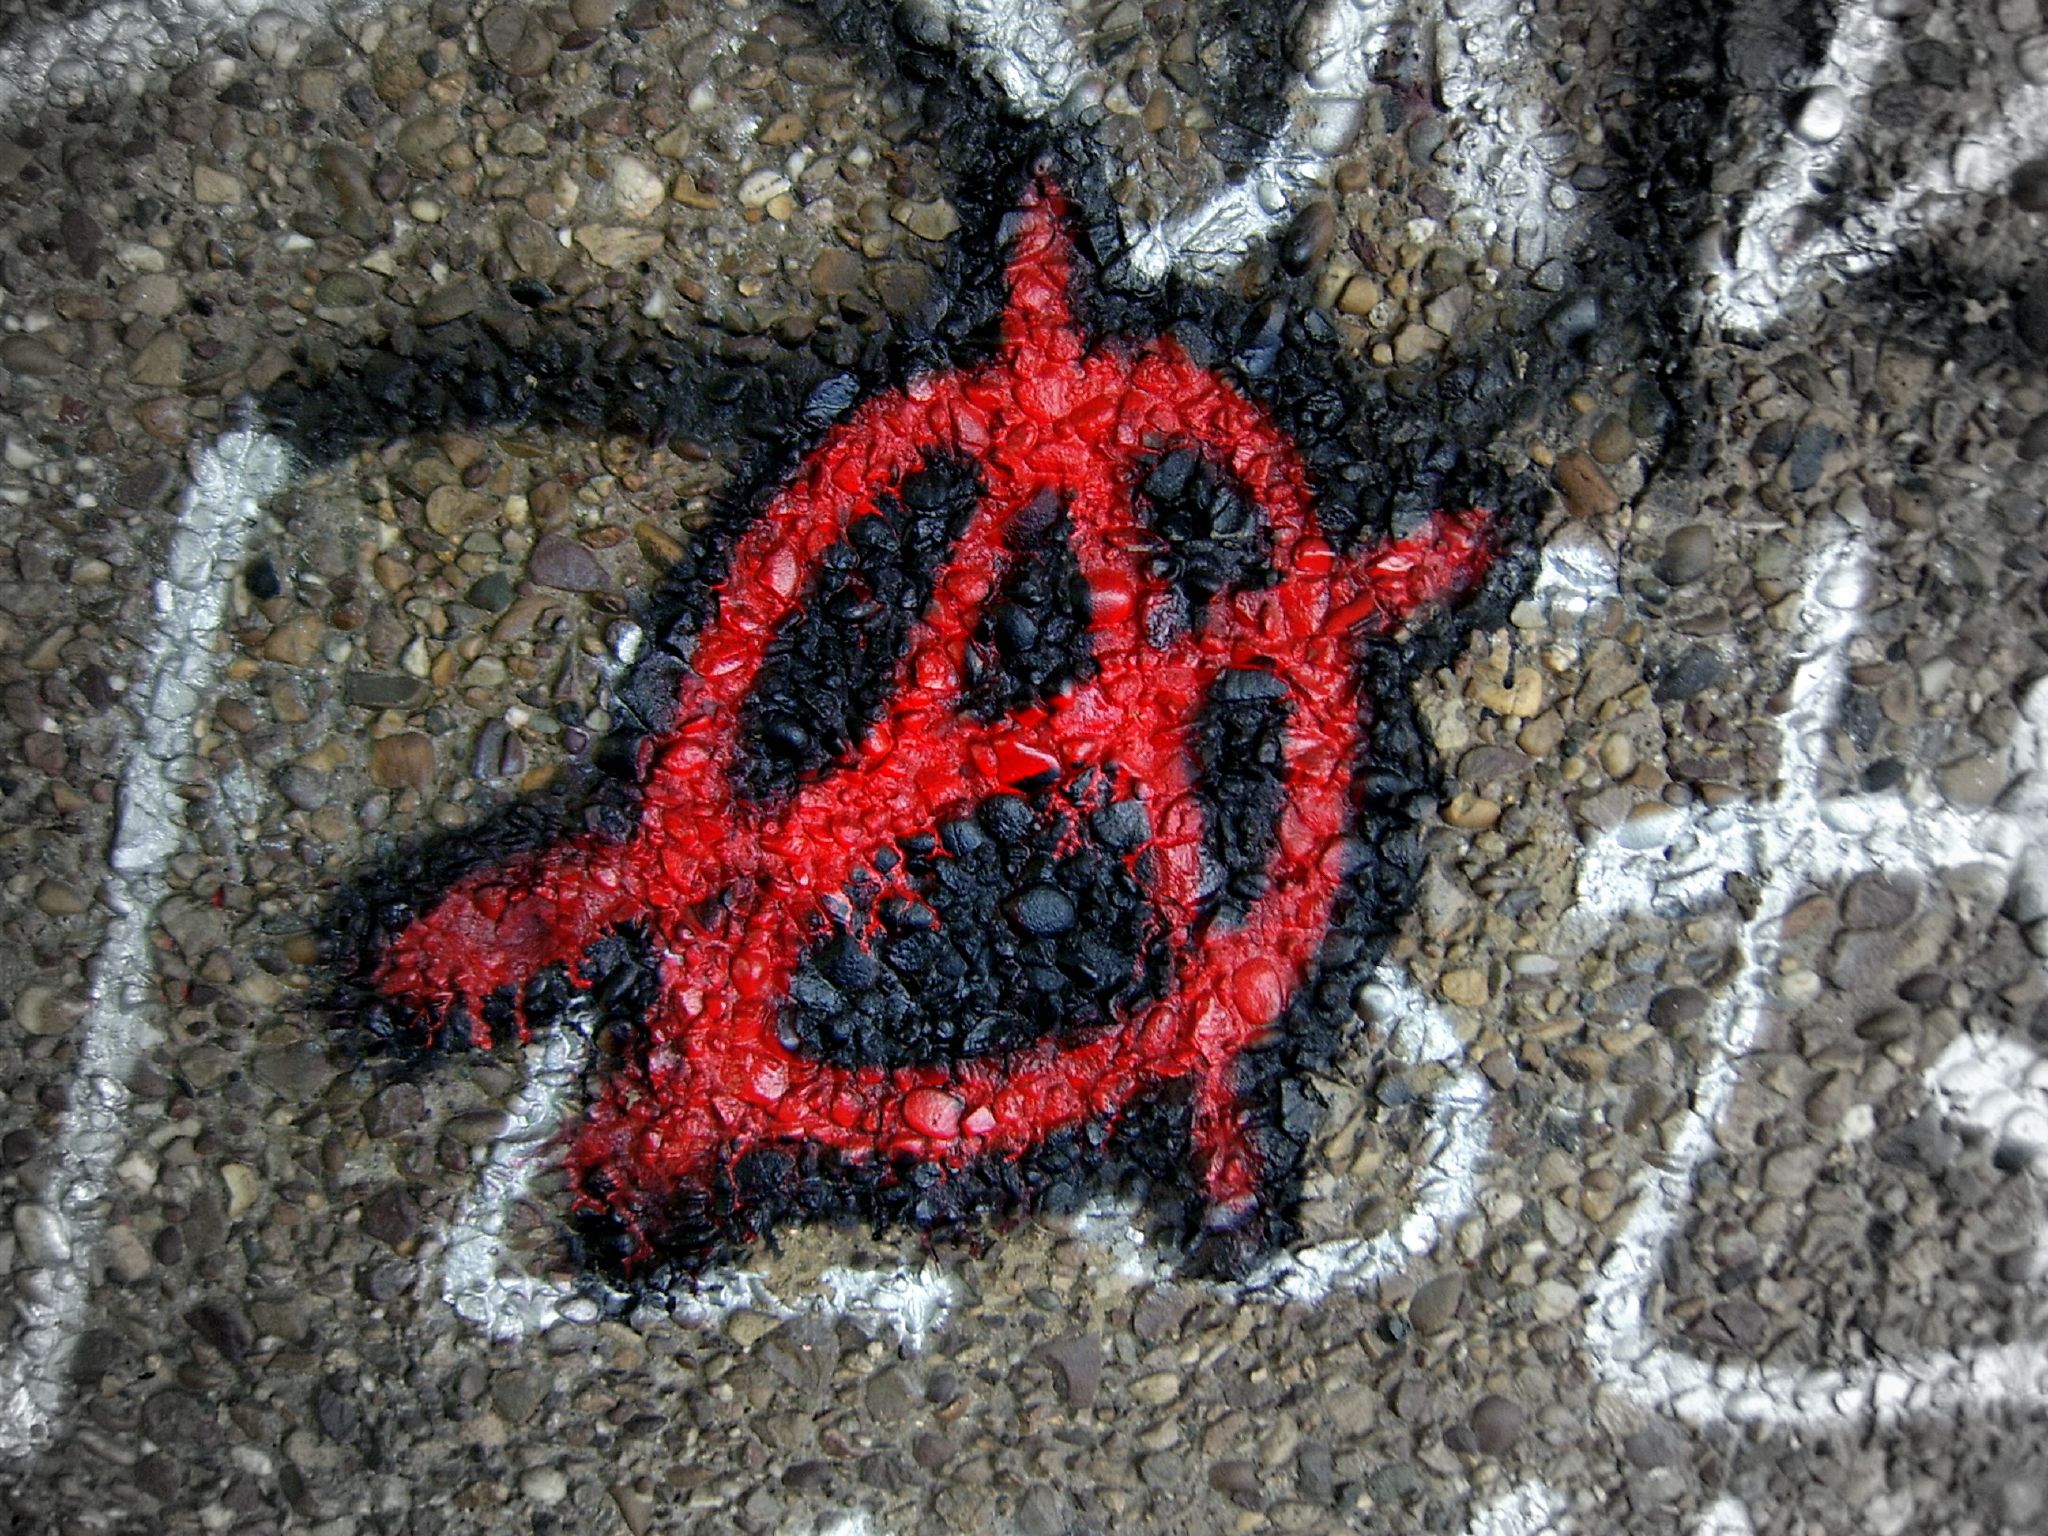 anarchy-graffiti-3052